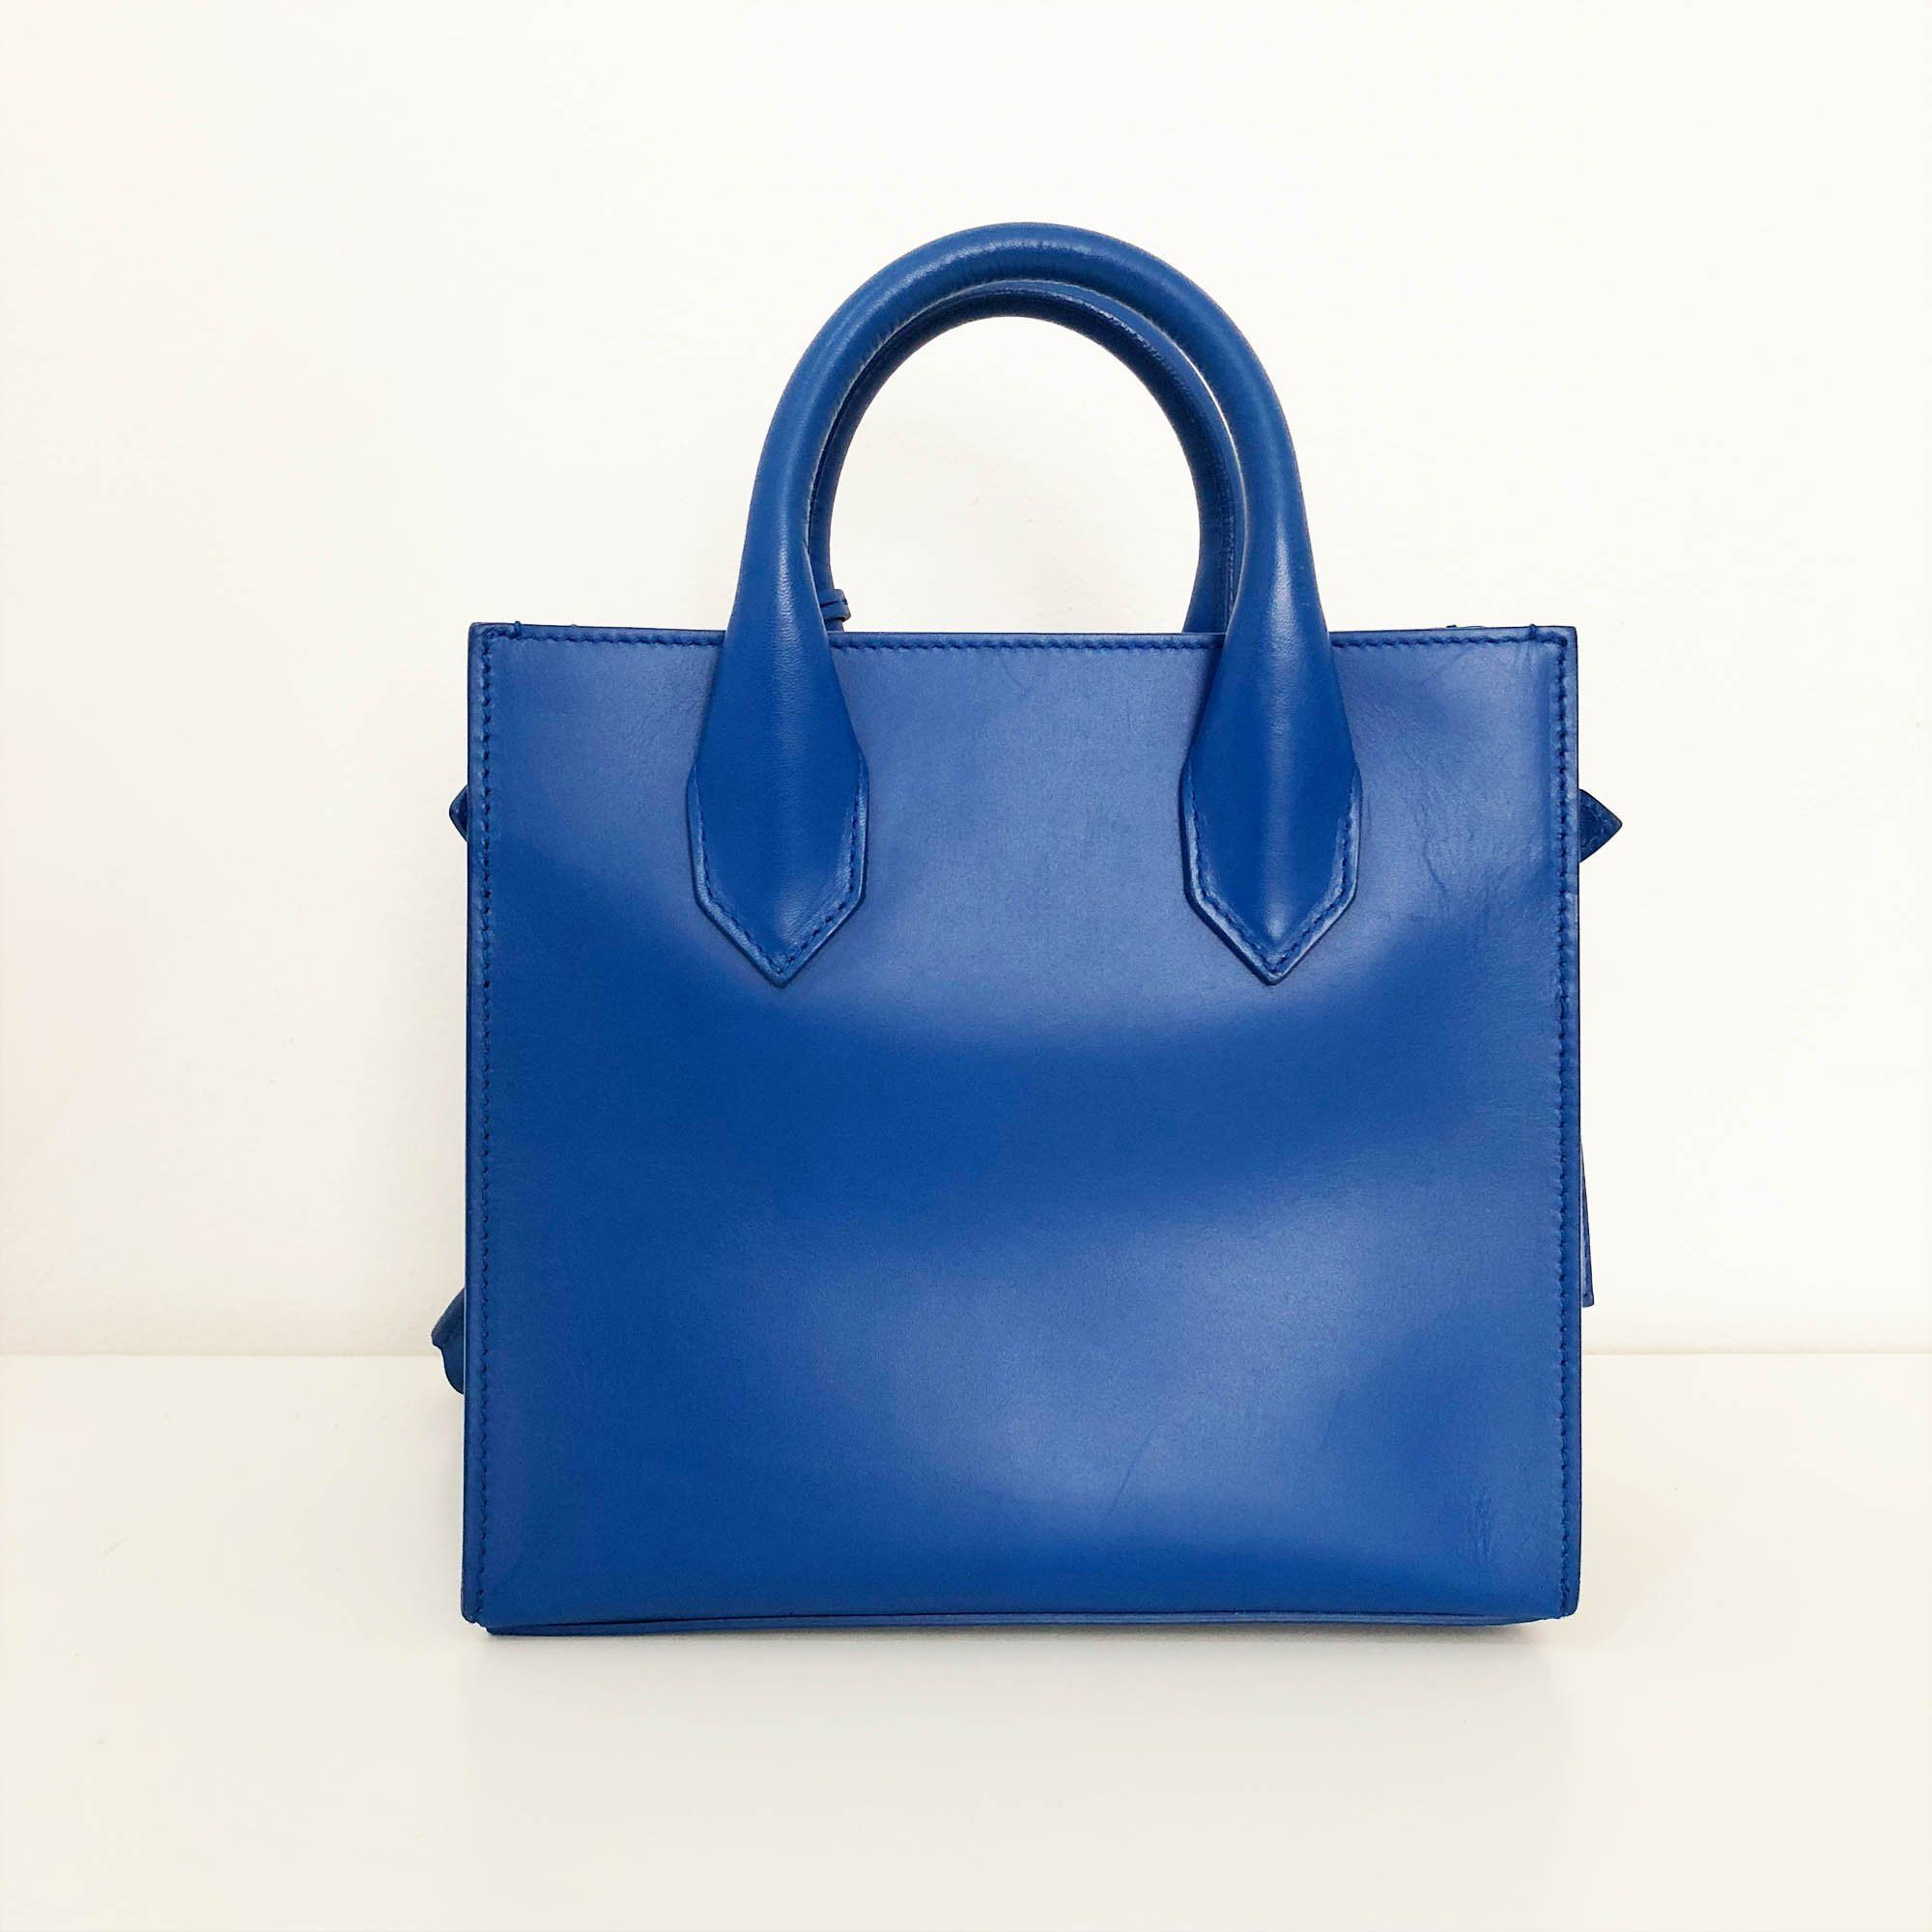 Balenciaga Blue Leather Leather Mini All Afternoon Tote